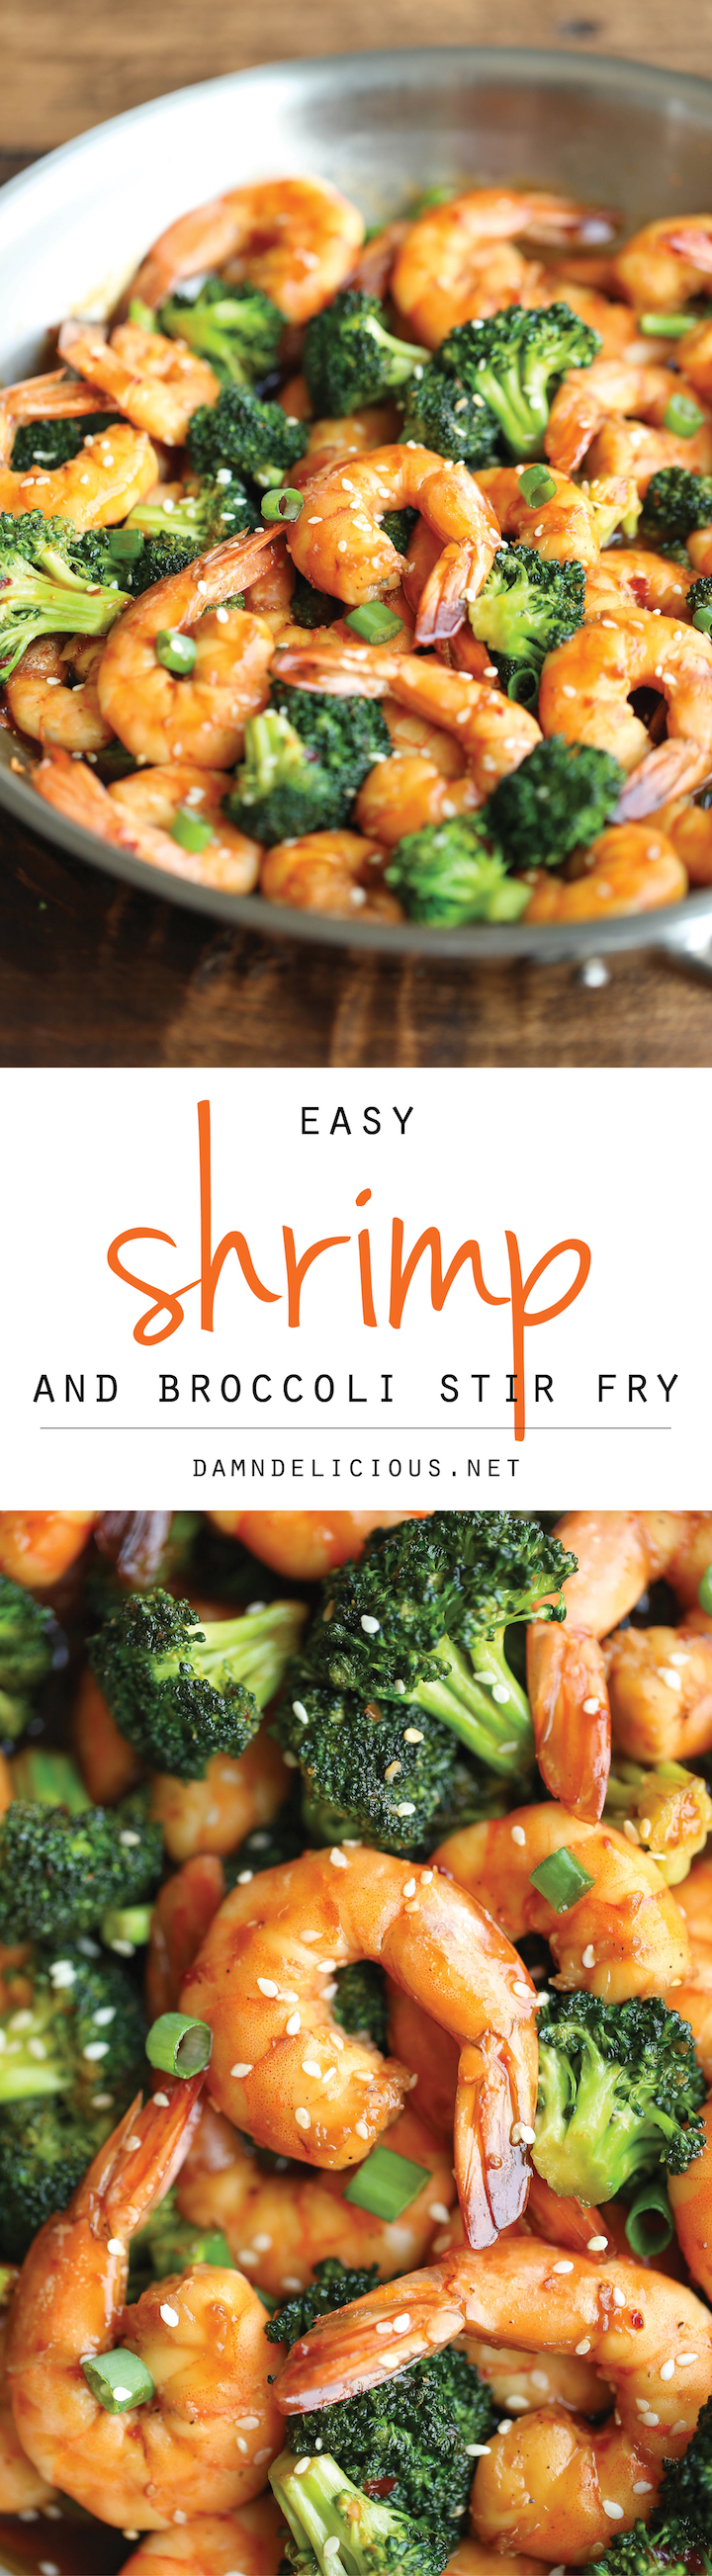 Easy Shrimp and Broccoli Stir Fry - The easiest stir fry you will ever make in just 20 min – it doesn't get easier (or quicker) than that! 287.3 calories.